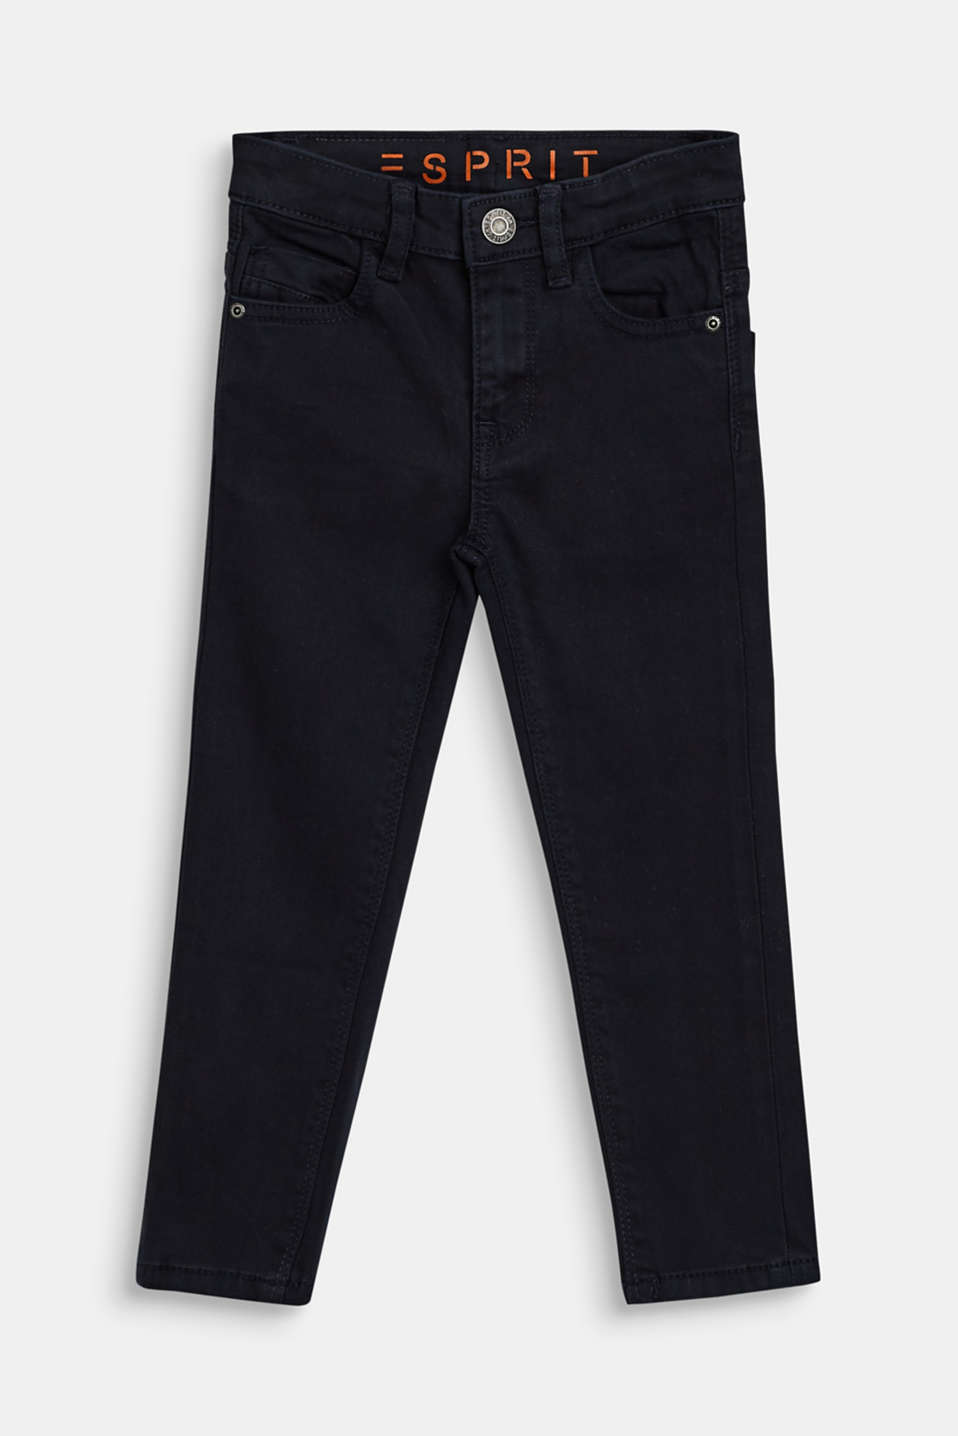 Esprit - Coloured stretch jeans with an adjustable waistband